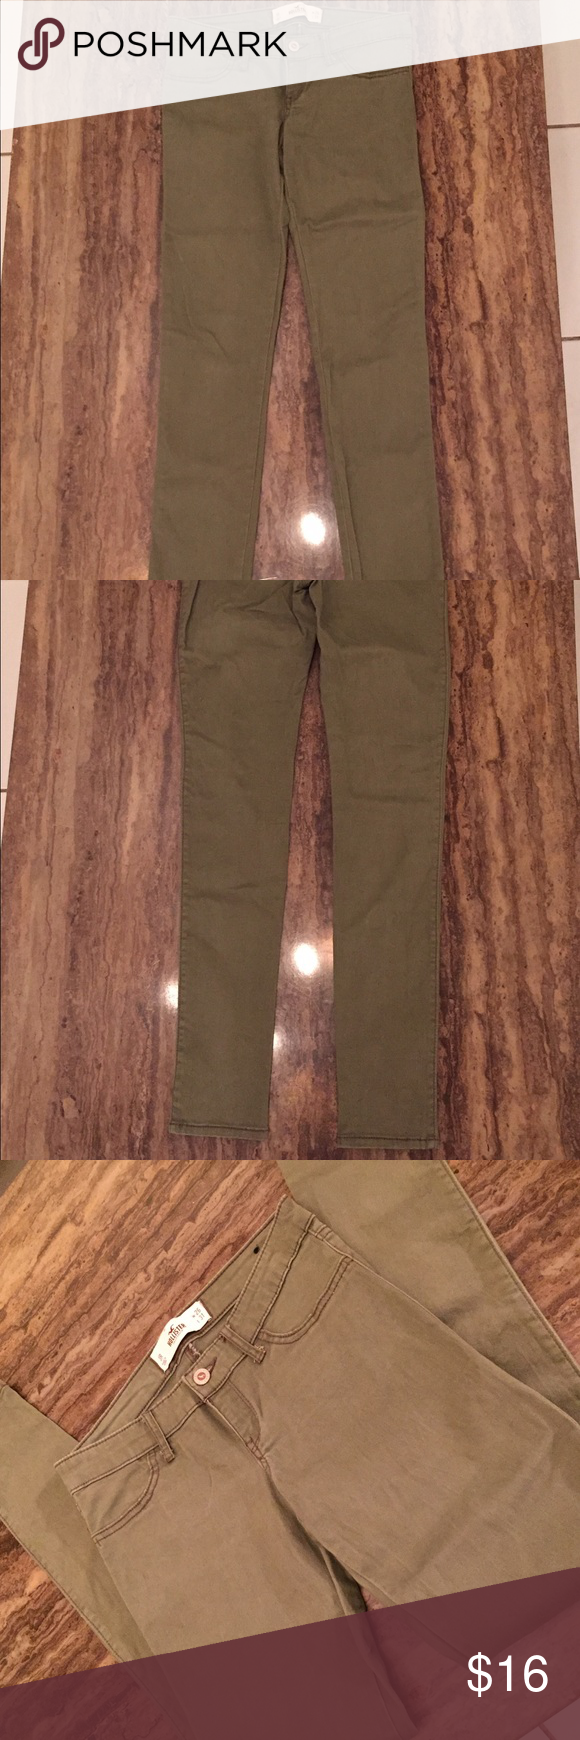 HOLLISTER ARMY GREEN Pants SIZE 3R W26 L 30 1/2 This is a nice pair of Army green skinny Hollister pants in a size 3 R with a 26 waist and 30 1/2 length.  Tag says 31 length but is 30 1/2 inches. The flat waist measures 14 inches rise is 7 inches.  The tag was cut out but they have a spandex blend . Thanks for looking.  See photos for better condition details .  They look great! Hollister Pants Skinny